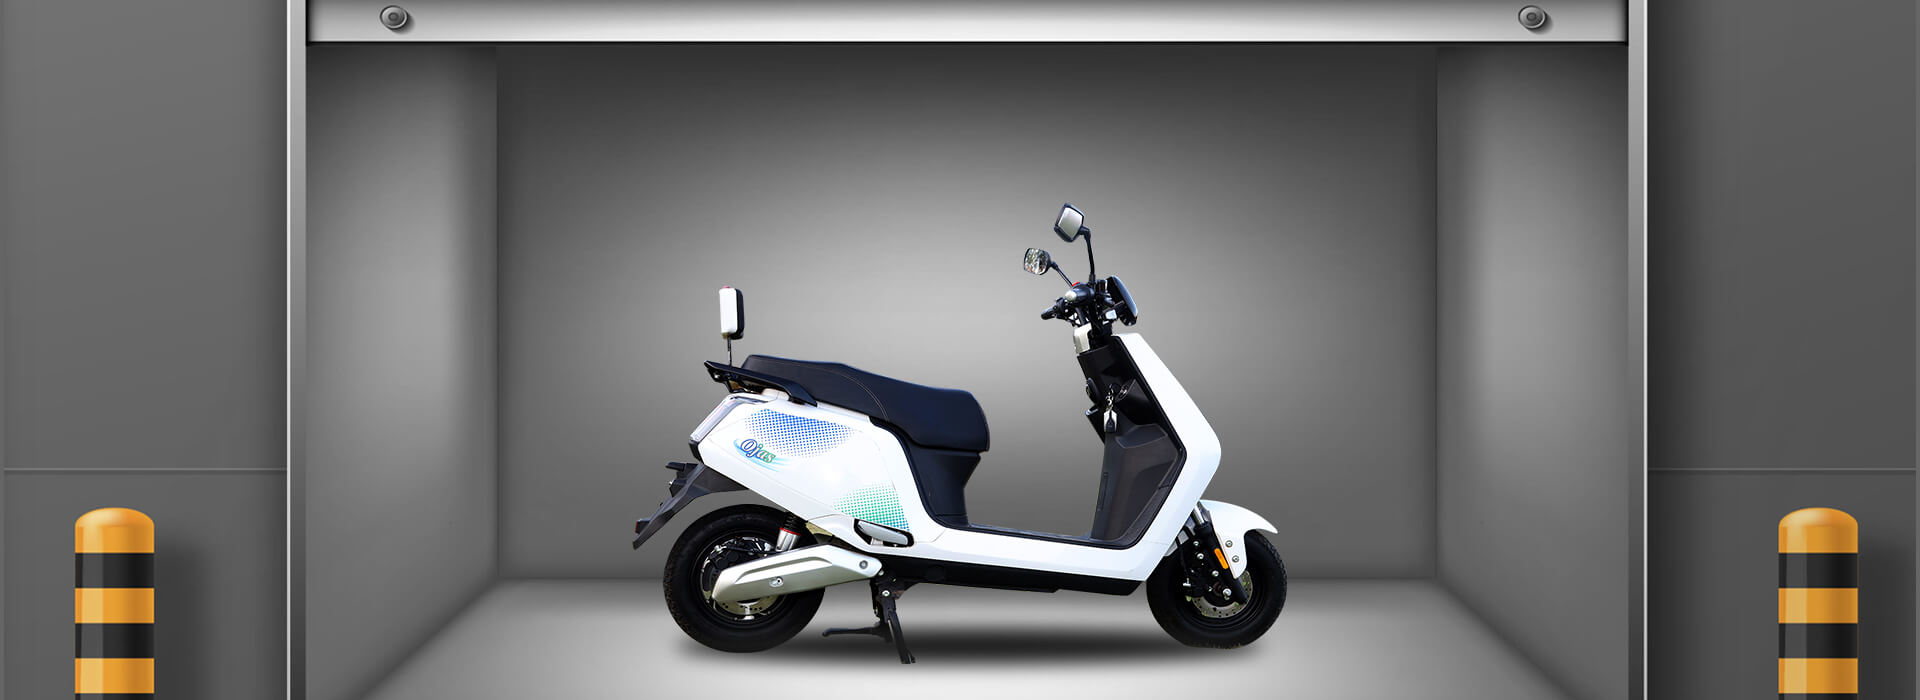 ojas electric scooter Specification